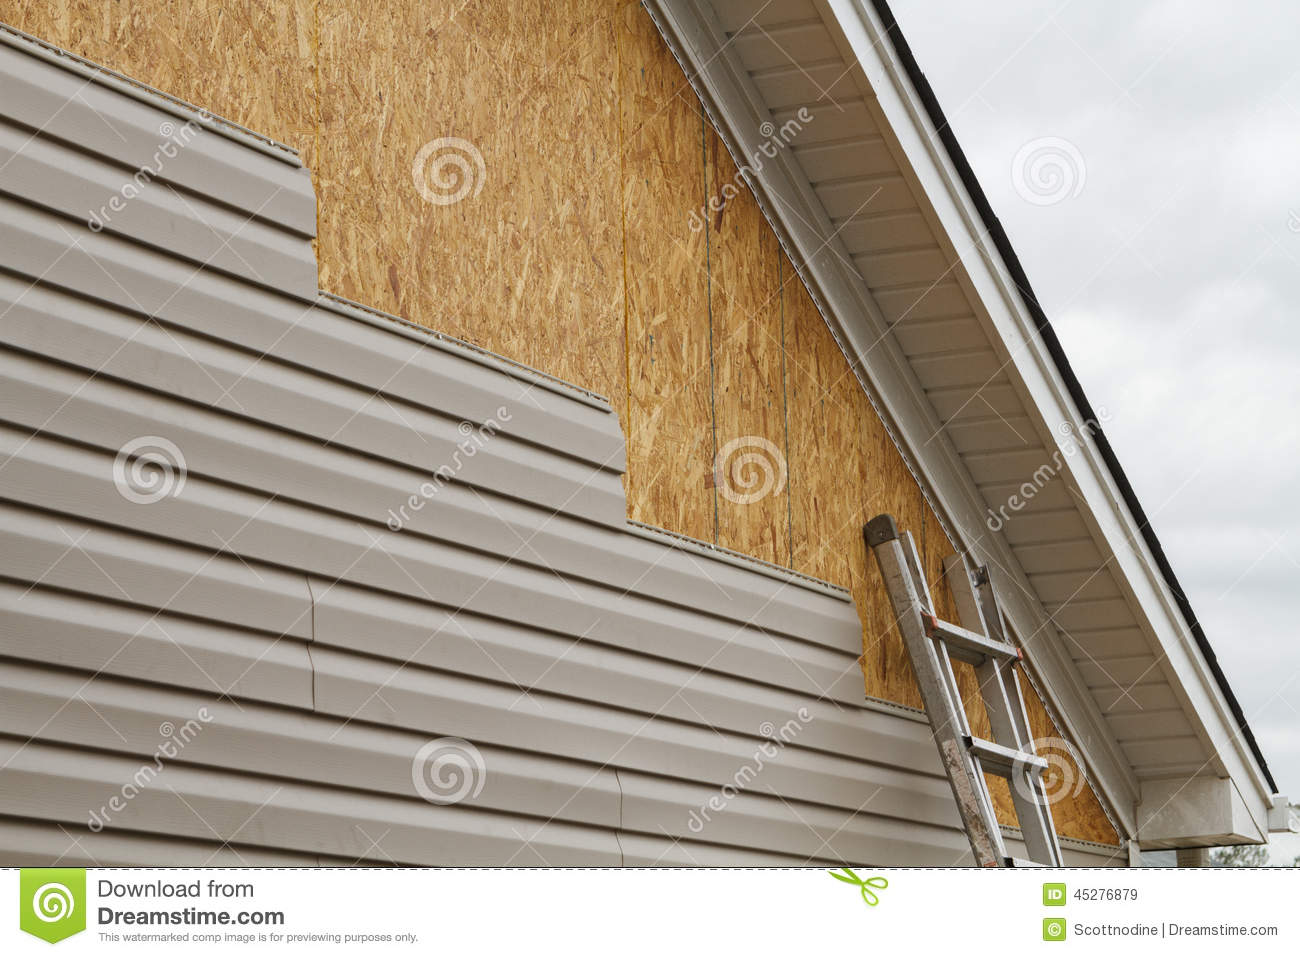 Vinyl Siding Installation On A House In The South Stock Photo Image 45276879